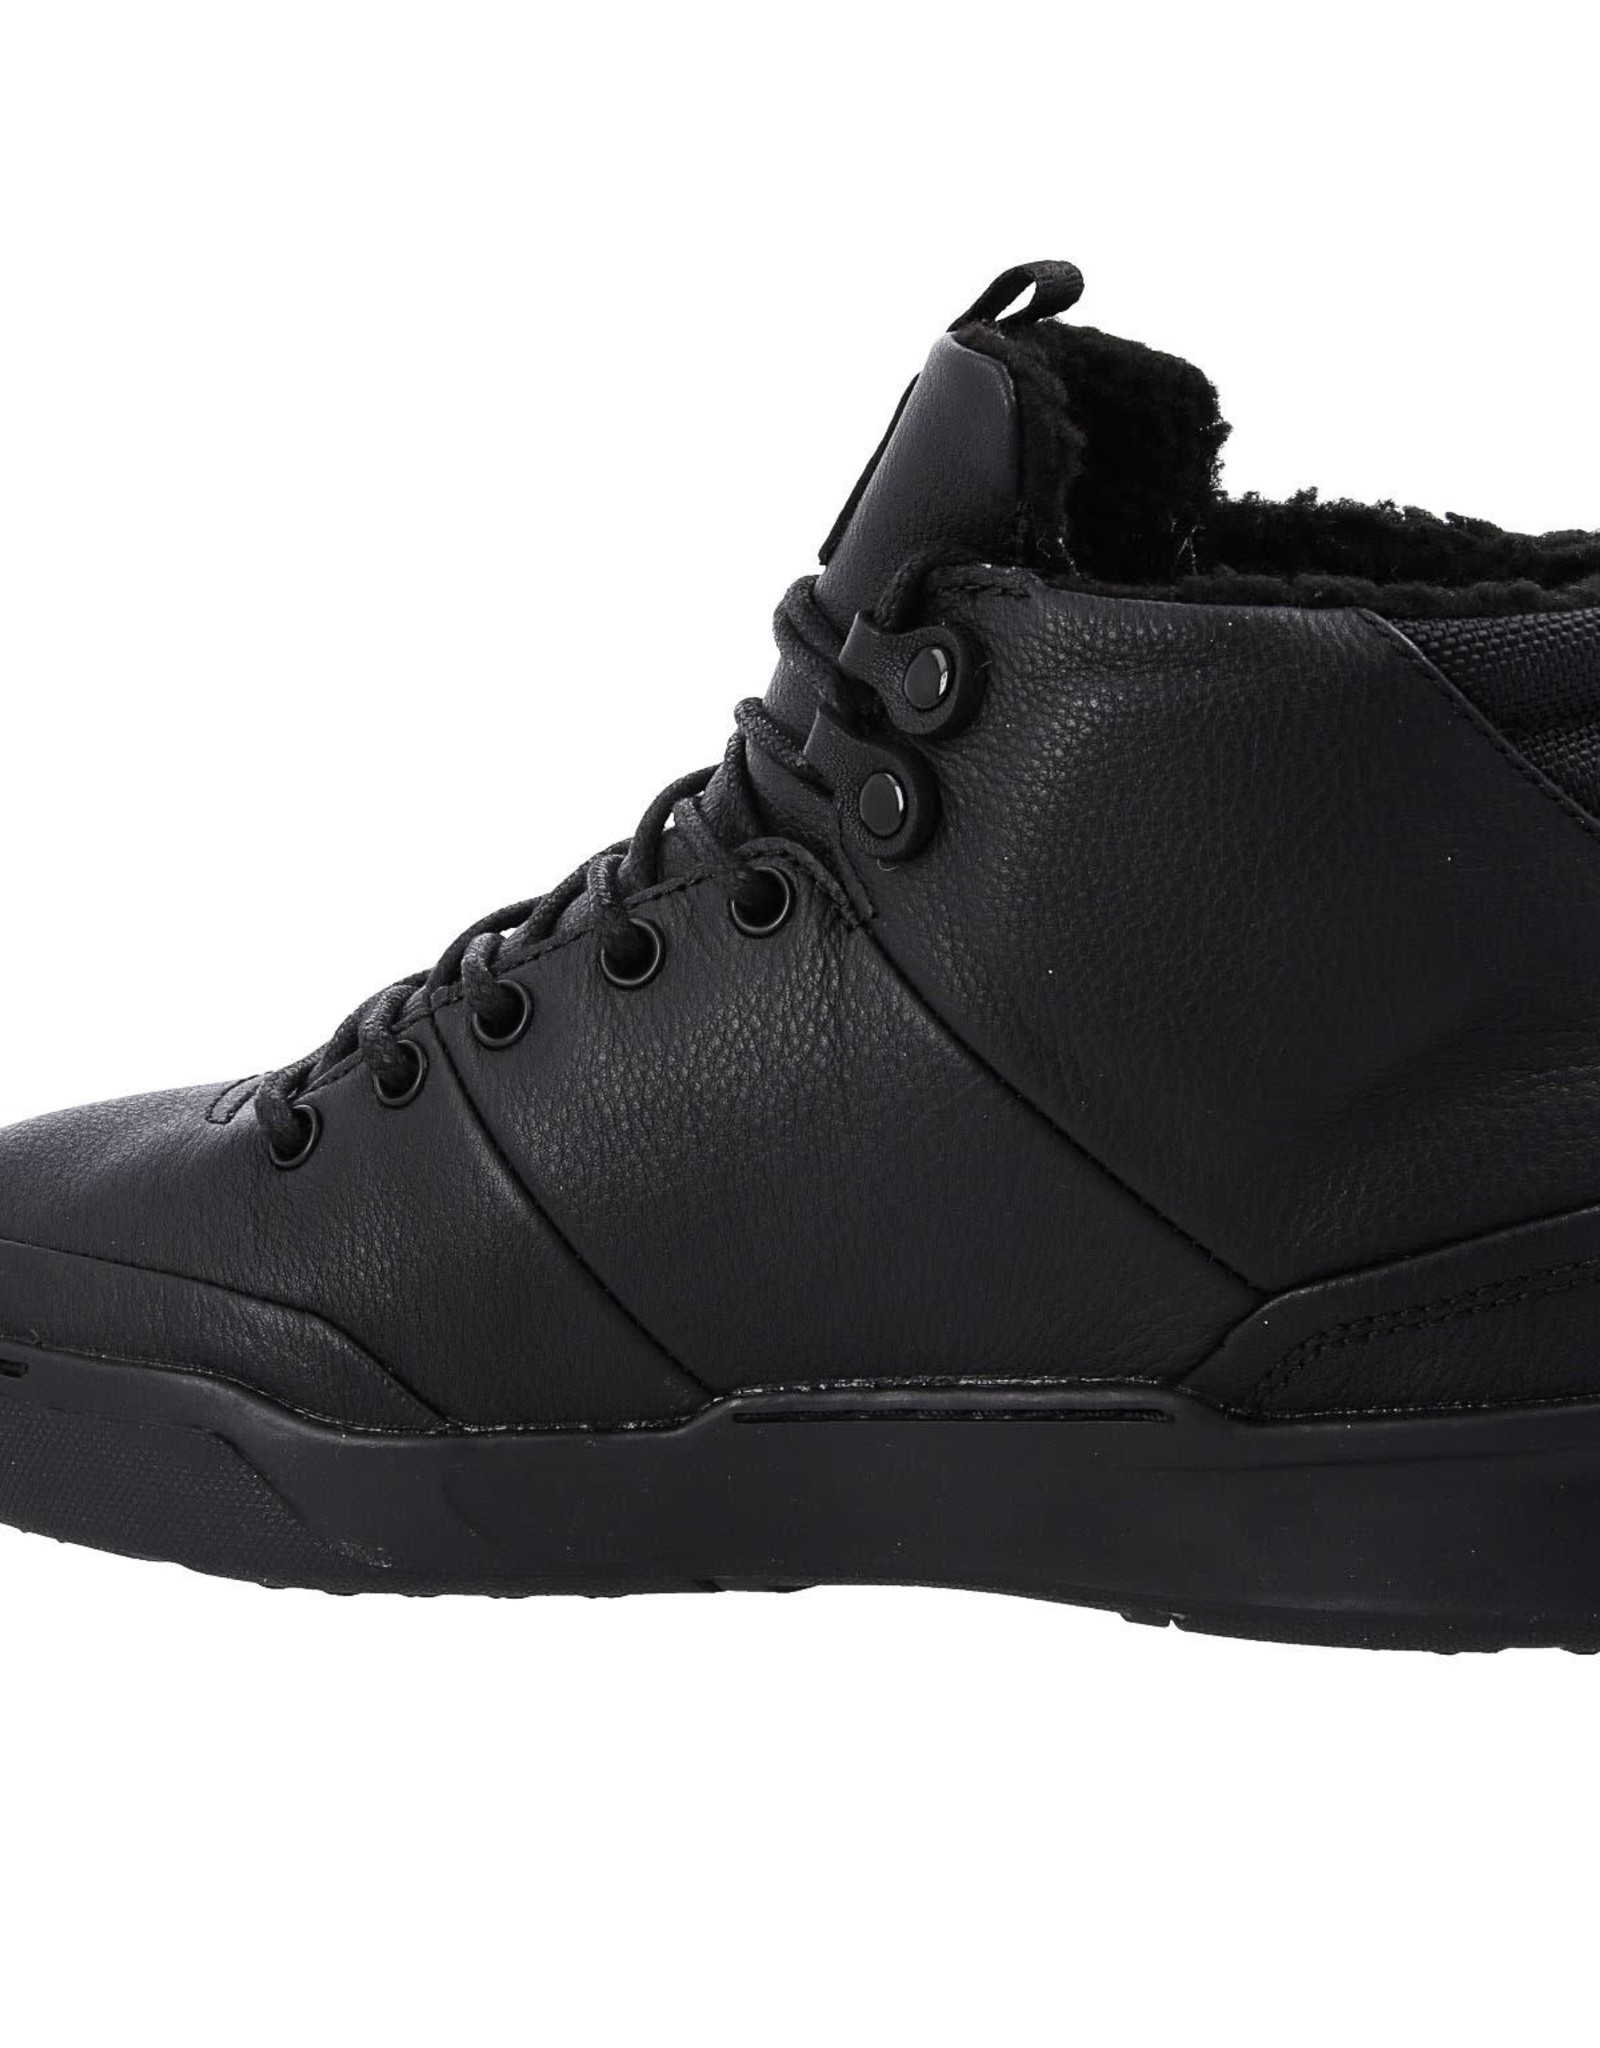 Lacoste Lacoste Explorateur Thermo Leather Boots